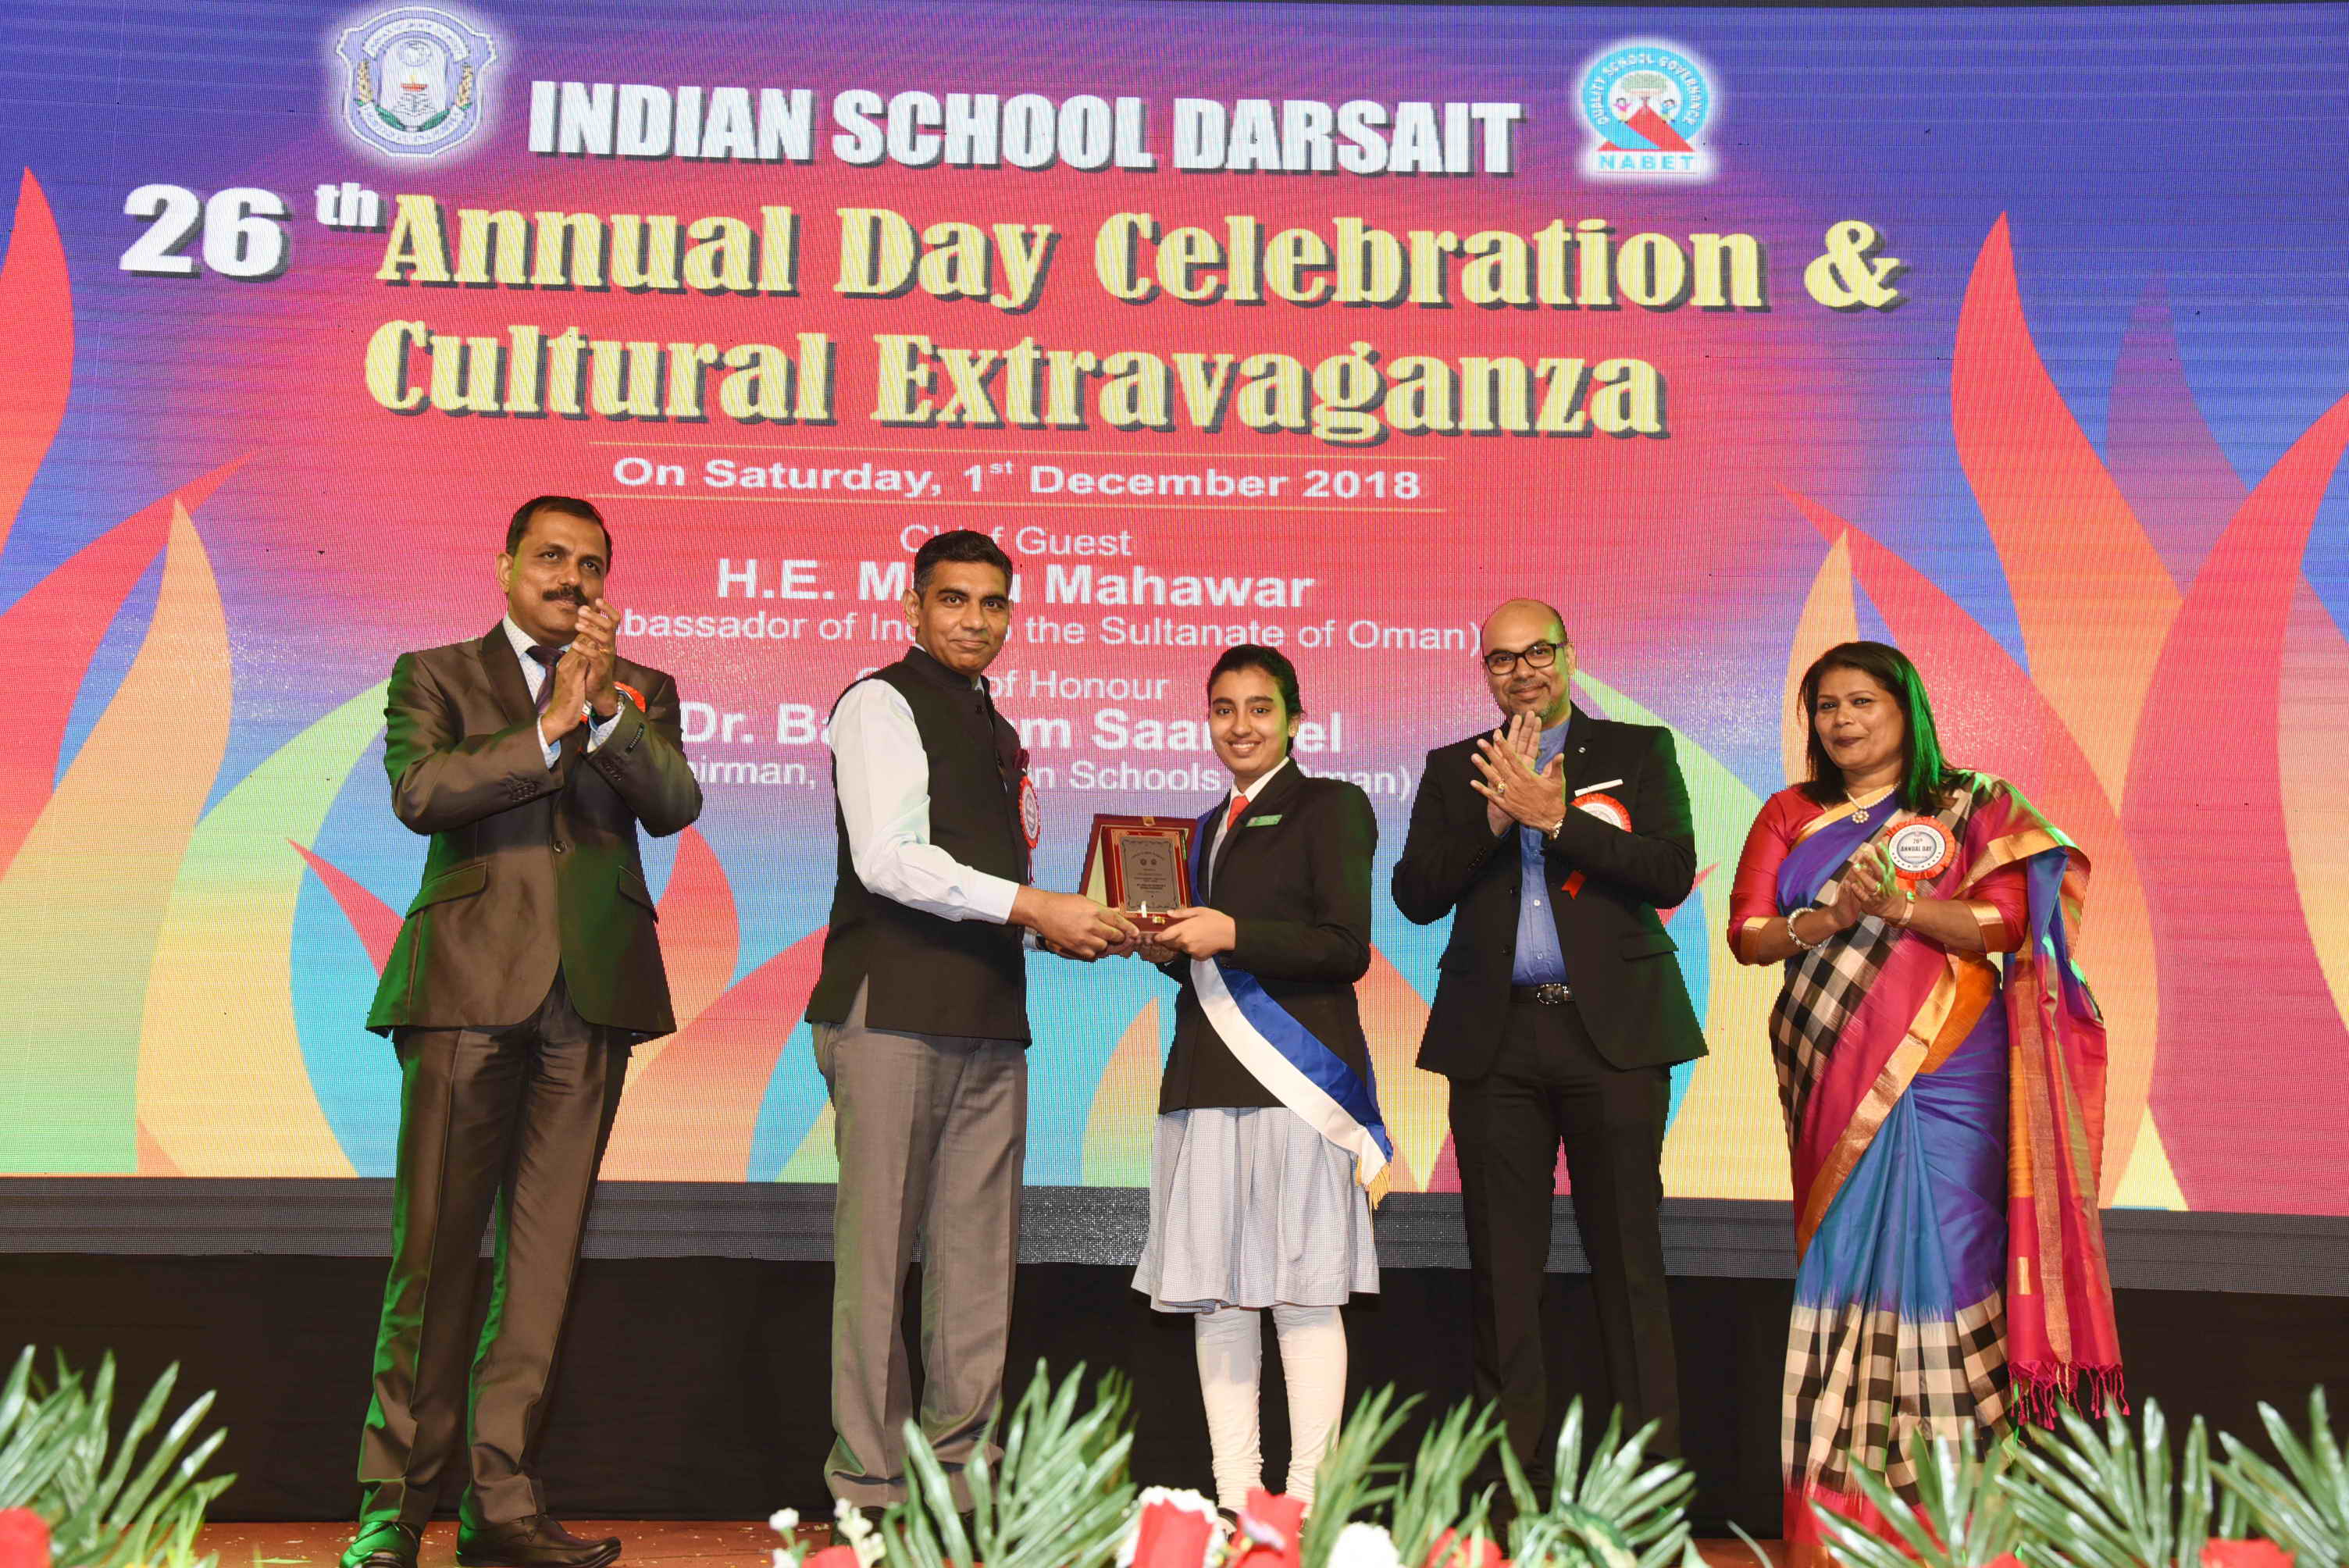 Ambassador was the Chief Guest at the Annual Day of Indian School Darsait, held on Saturday, 1st December 2018.